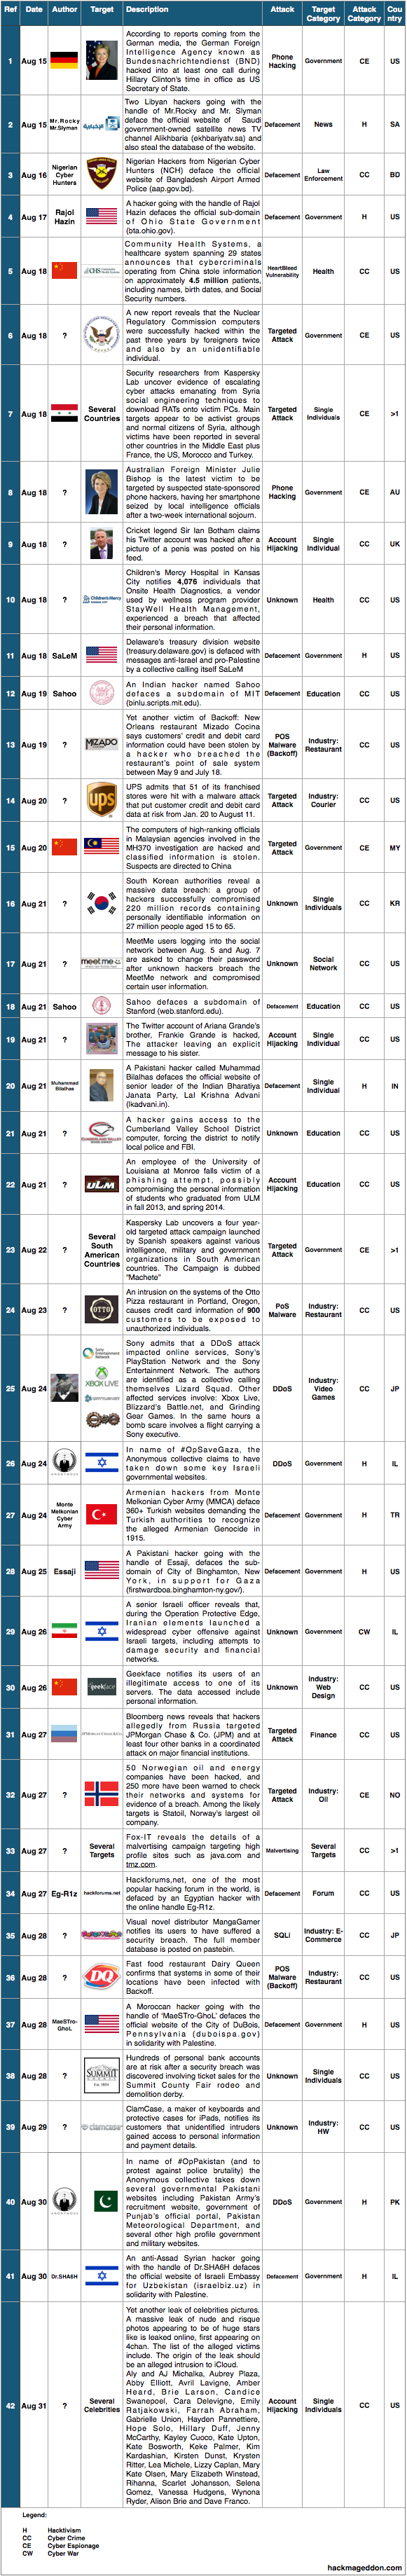 16-31-august-2014-cyber-attacks-timeline-v2